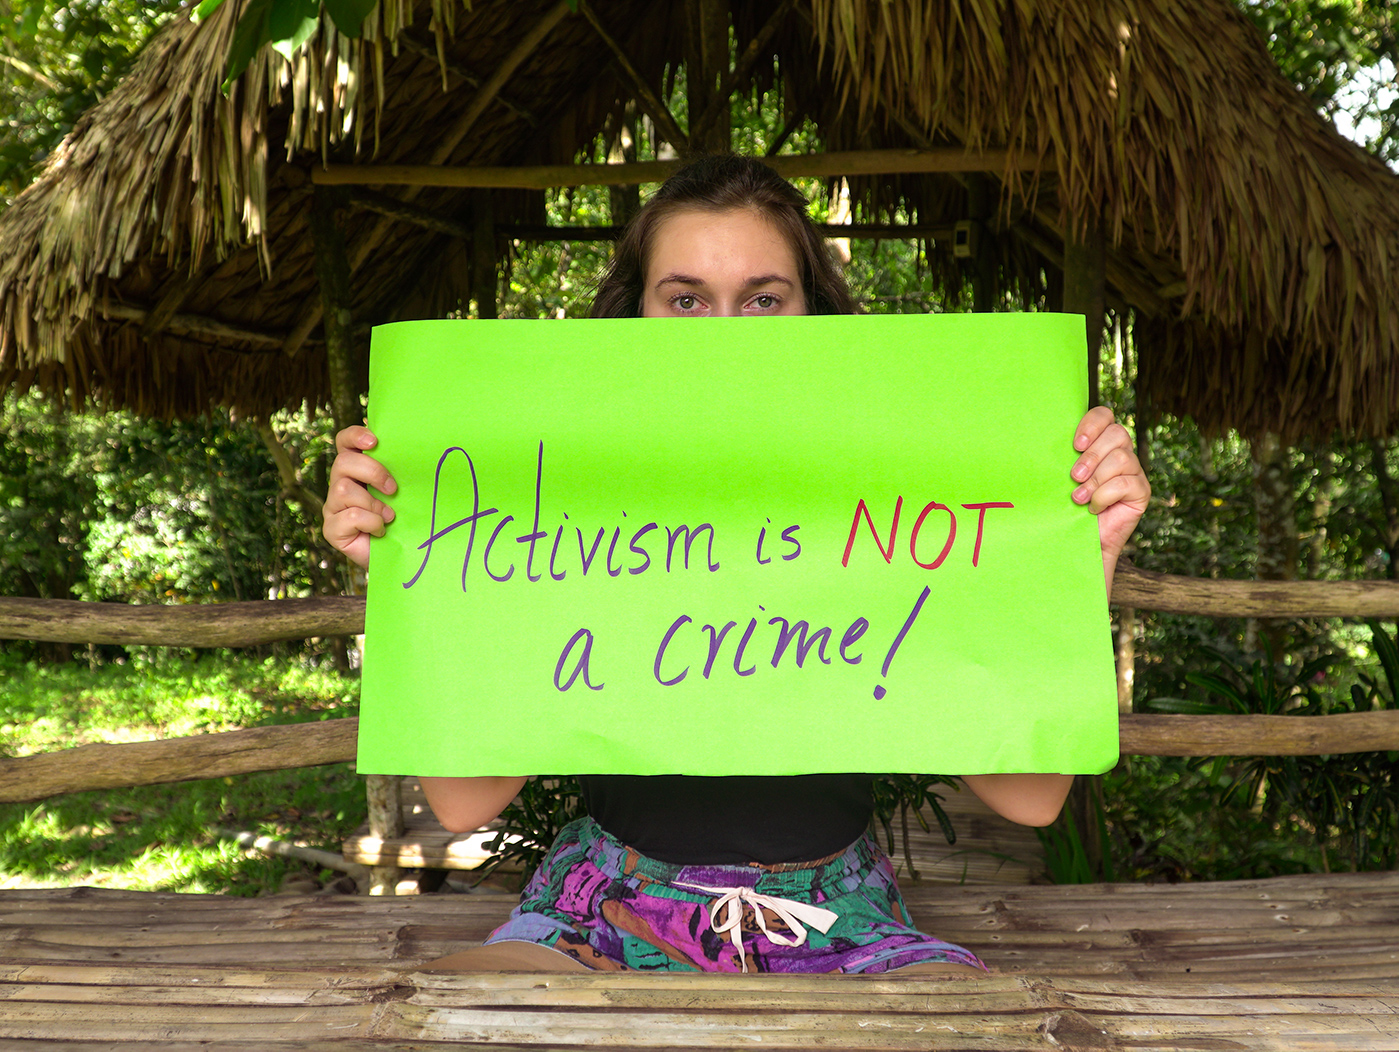 Activism is not a crime